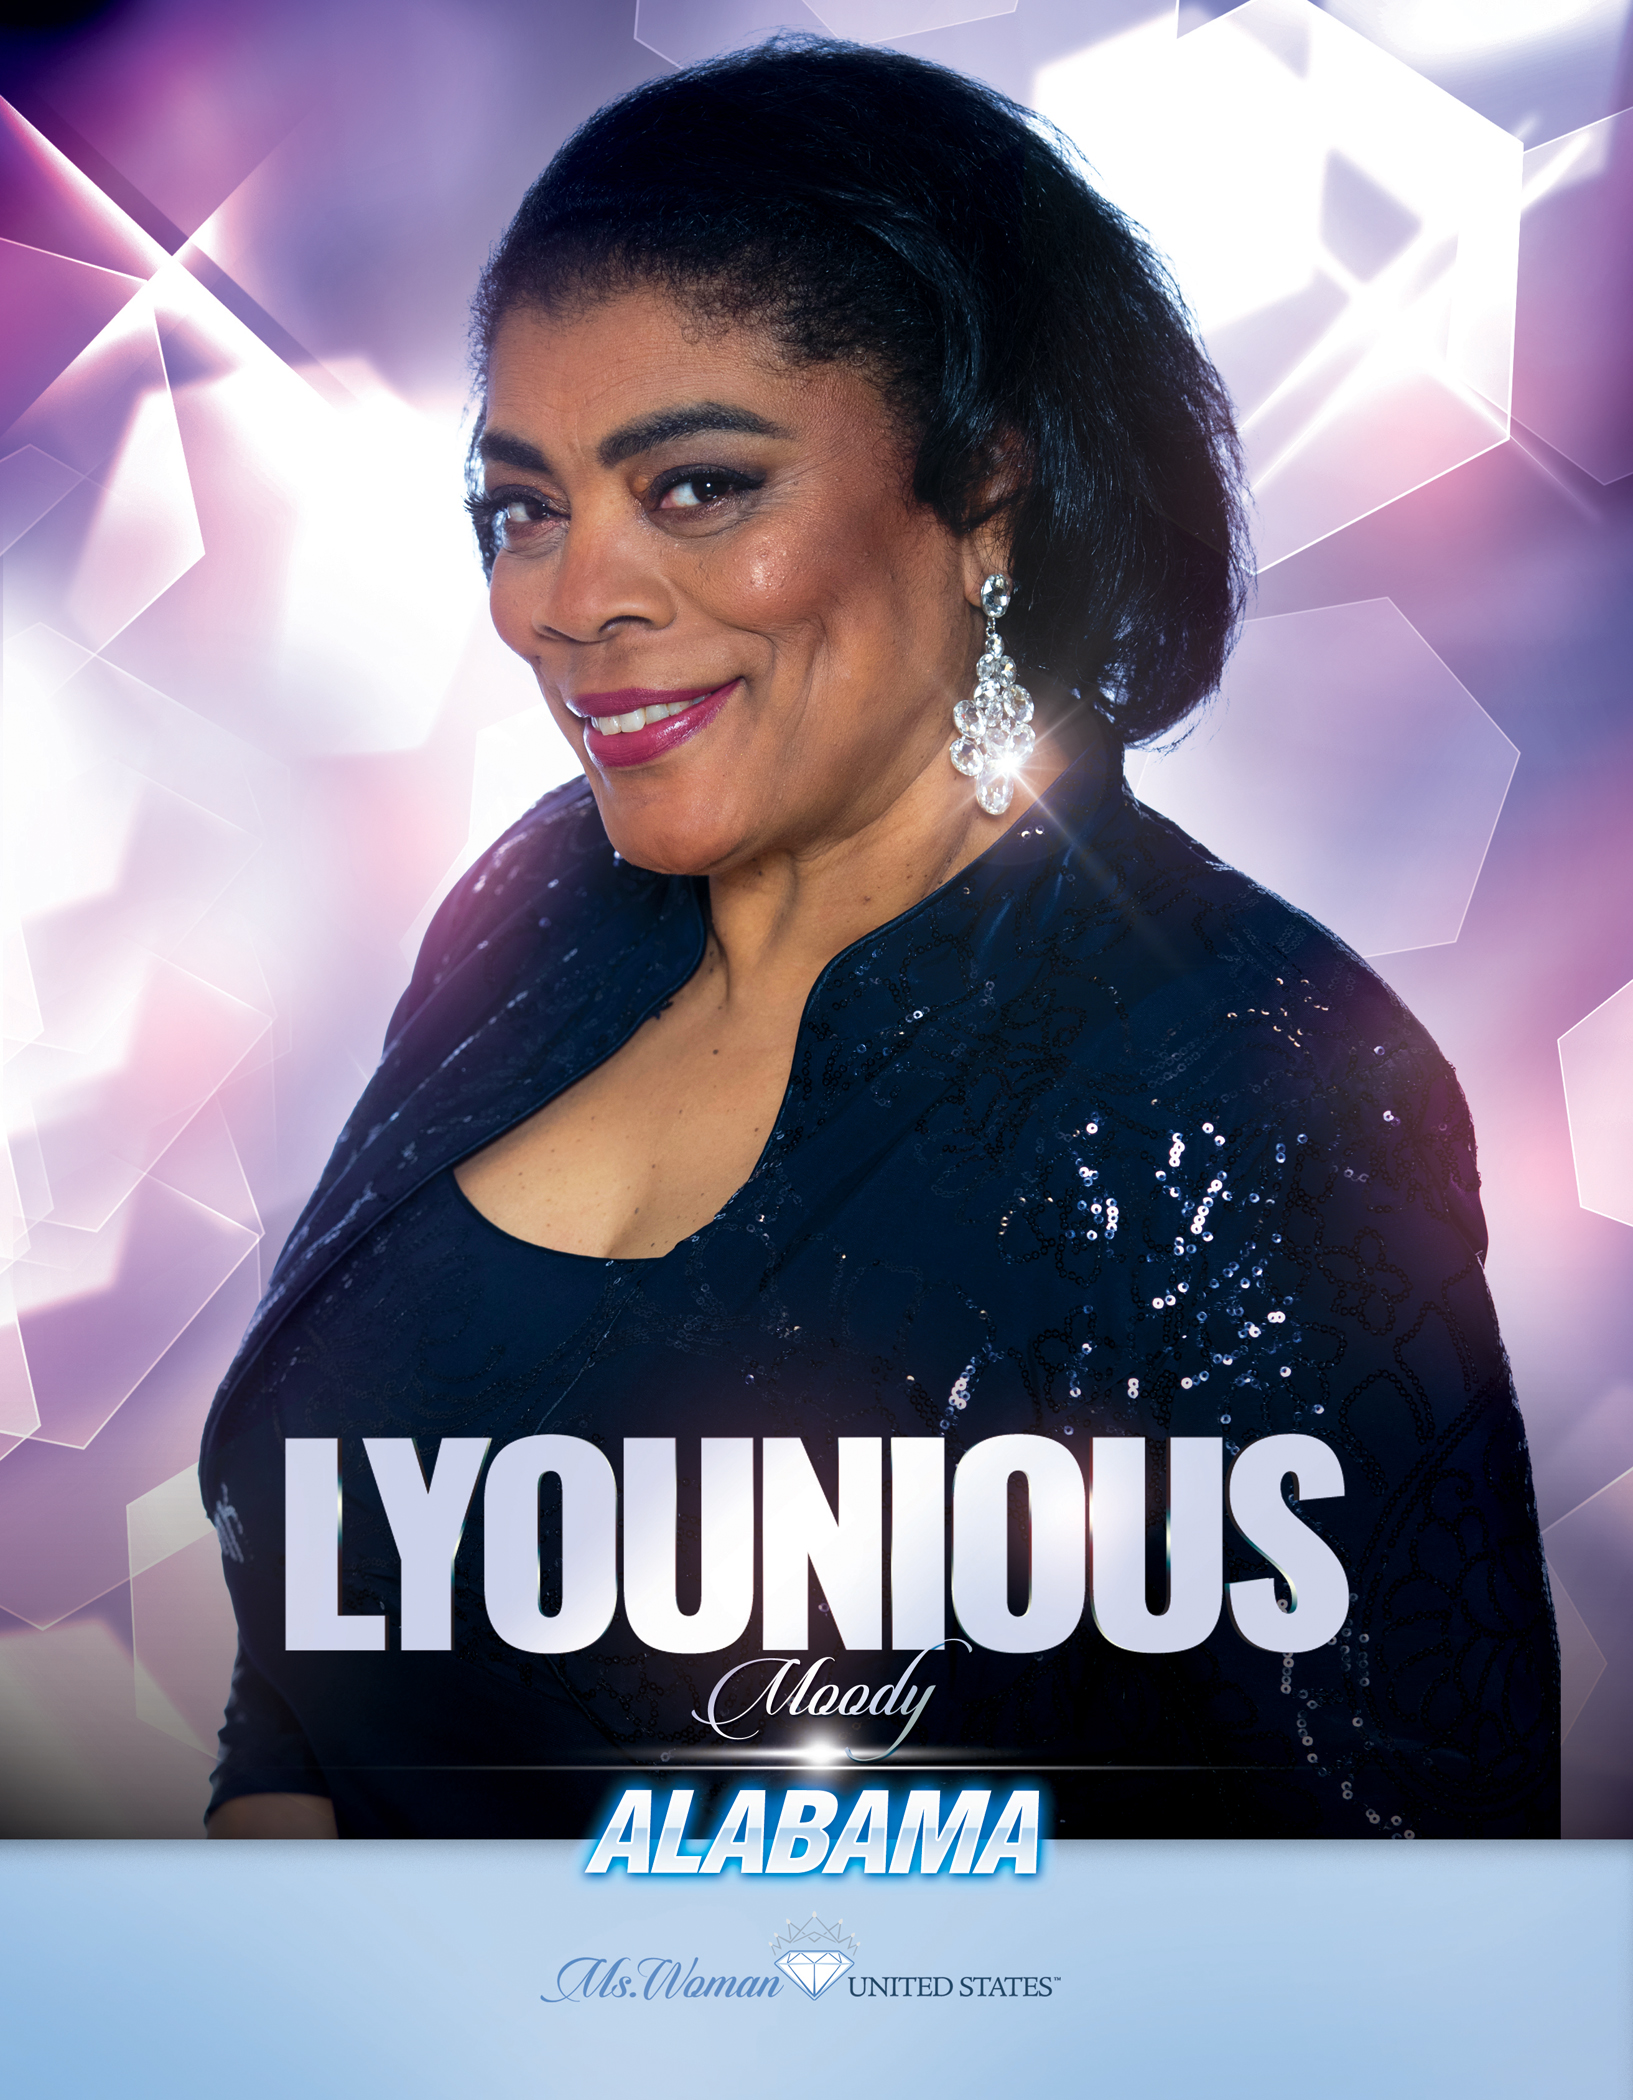 Lyounious Moody Ms. Woman Alabama United States - 2019